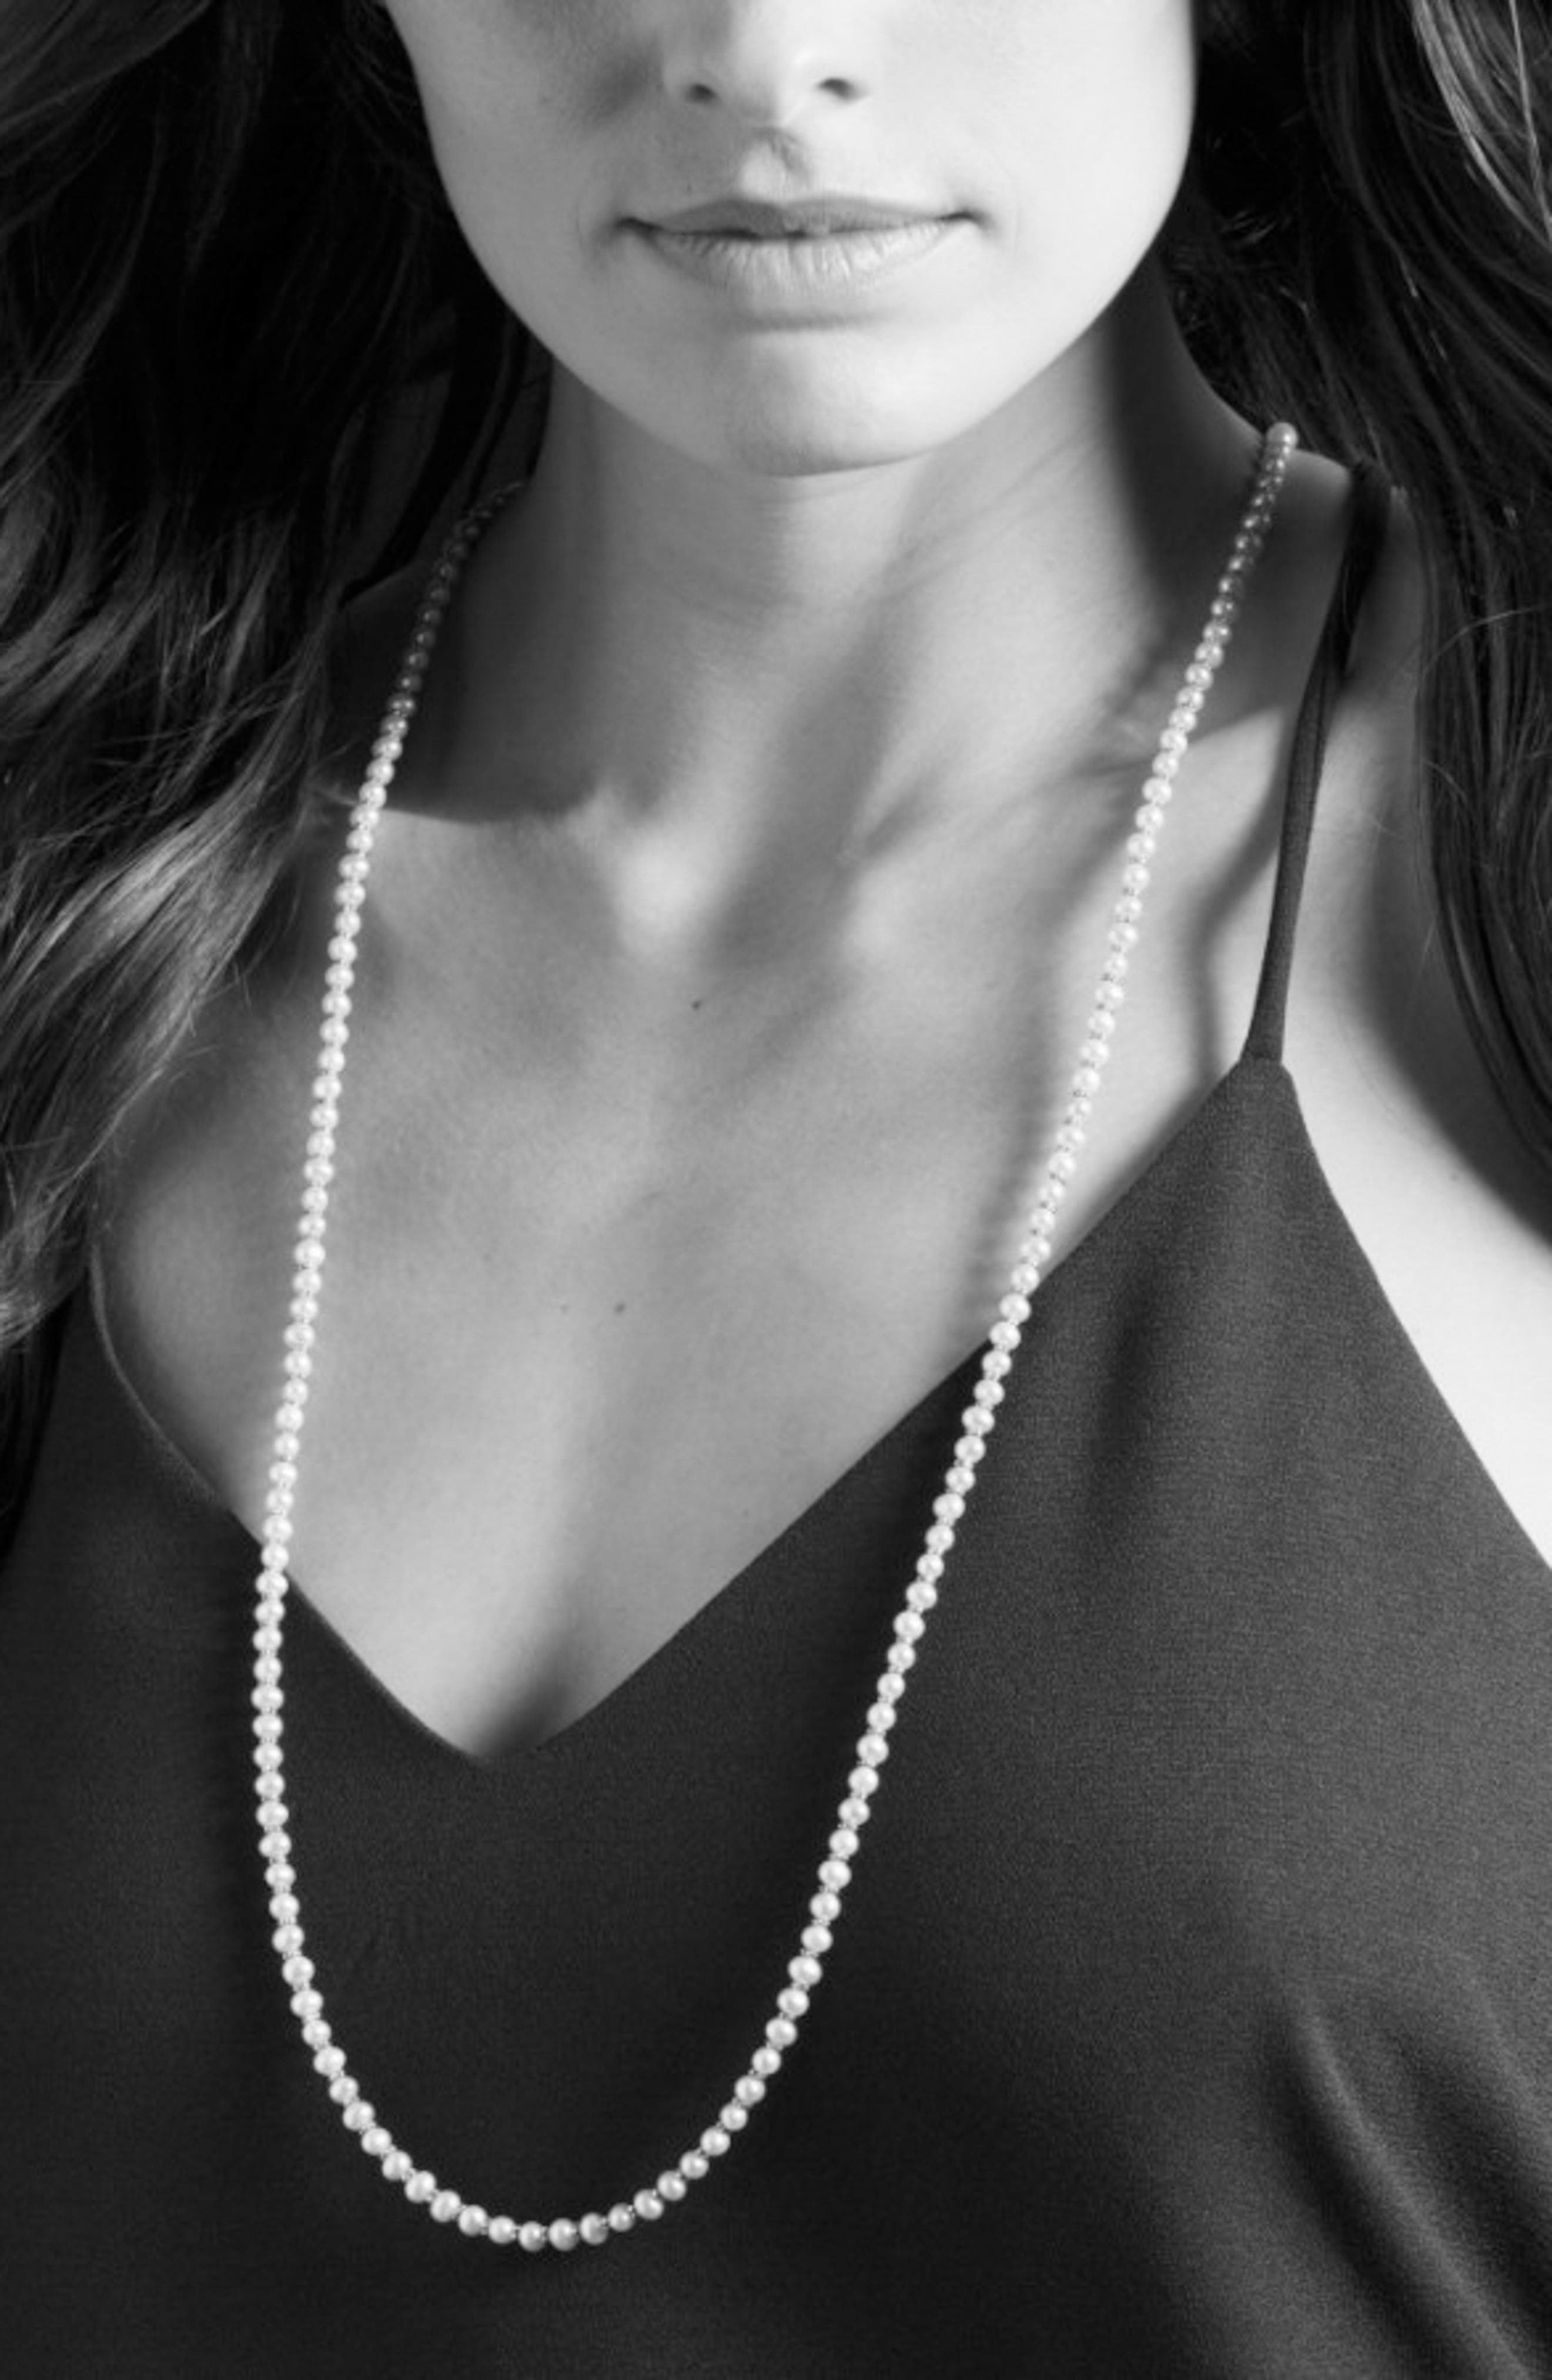 'Luna' Long Micro Bead & Pearl Necklace,                             Alternate thumbnail 2, color,                             SILVER/ PEARL